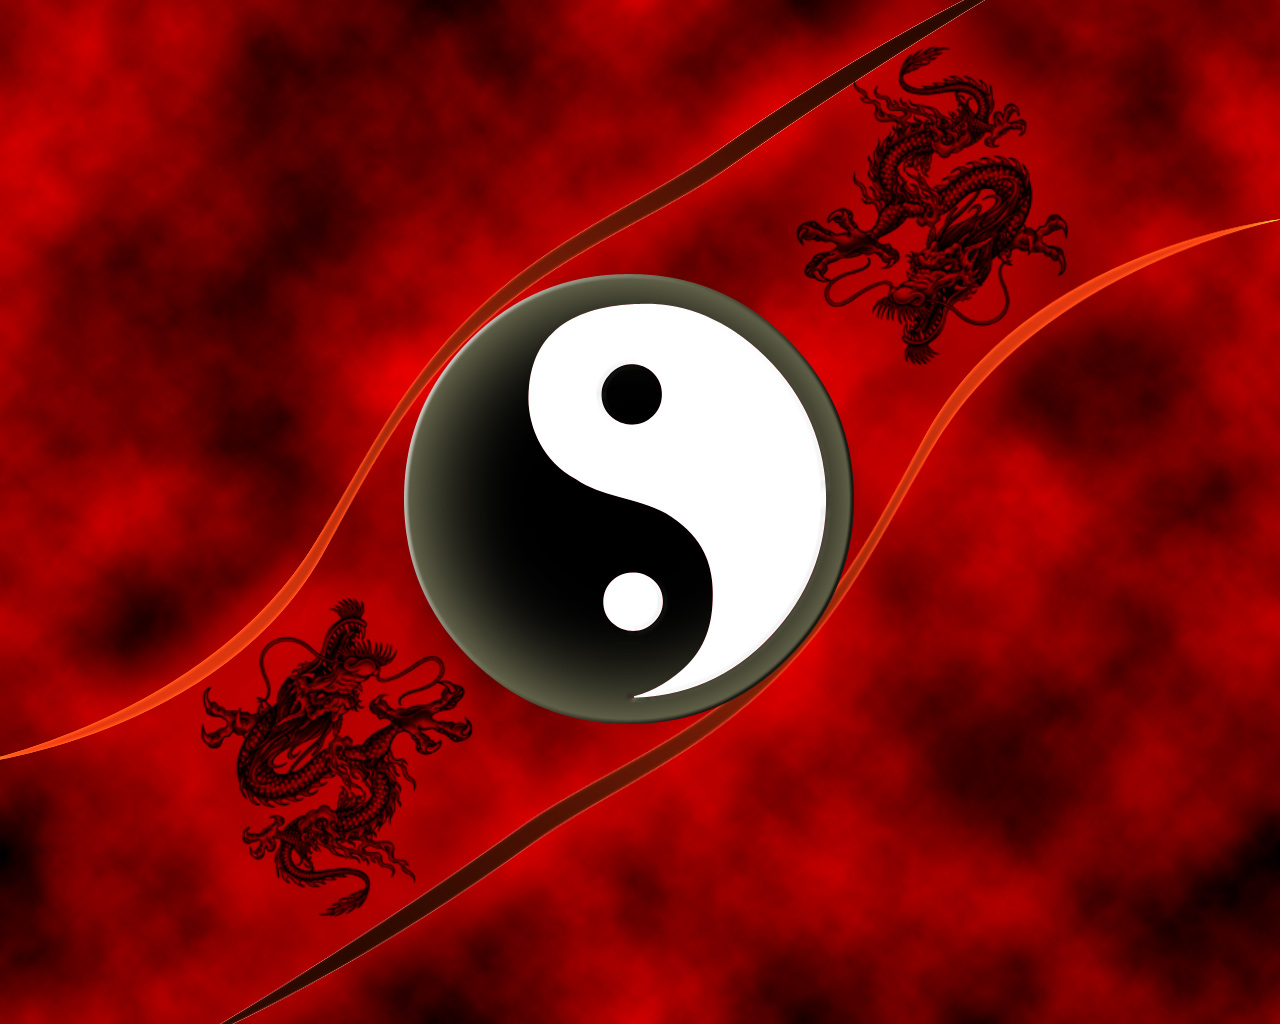 Fire feng shui wallpapers Feng Shui Doctrine articles and e books 1280x1024